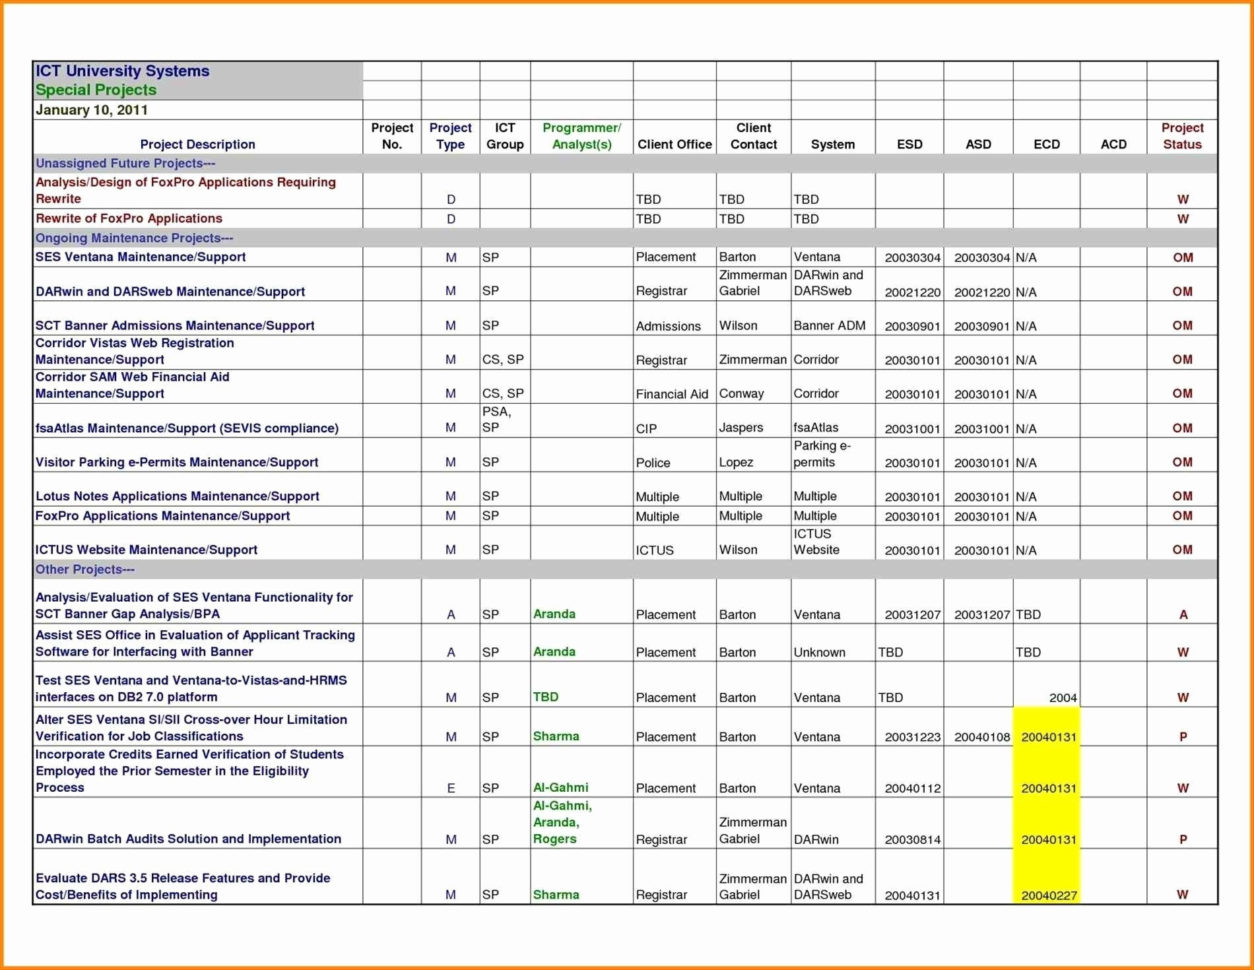 Applicant Tracking Spreadsheet Download Free – Spreadsheet Collections To Applicant Tracking Spreadsheet